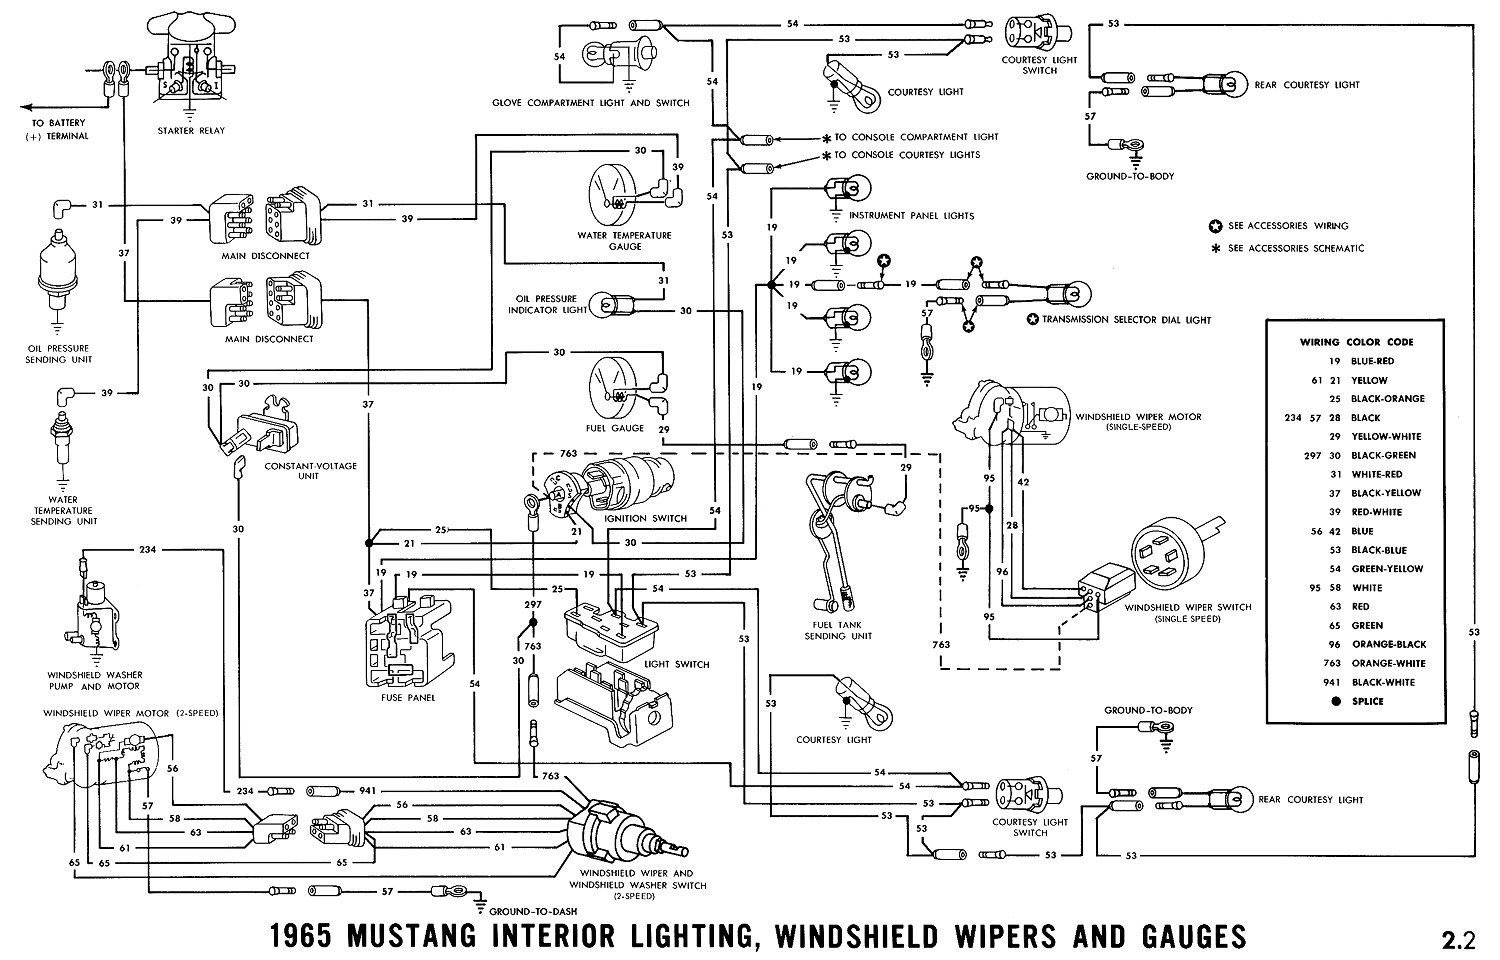 1965g 1965 mustang wiring diagrams average joe restoration fender mustang wiring schematic at gsmx.co